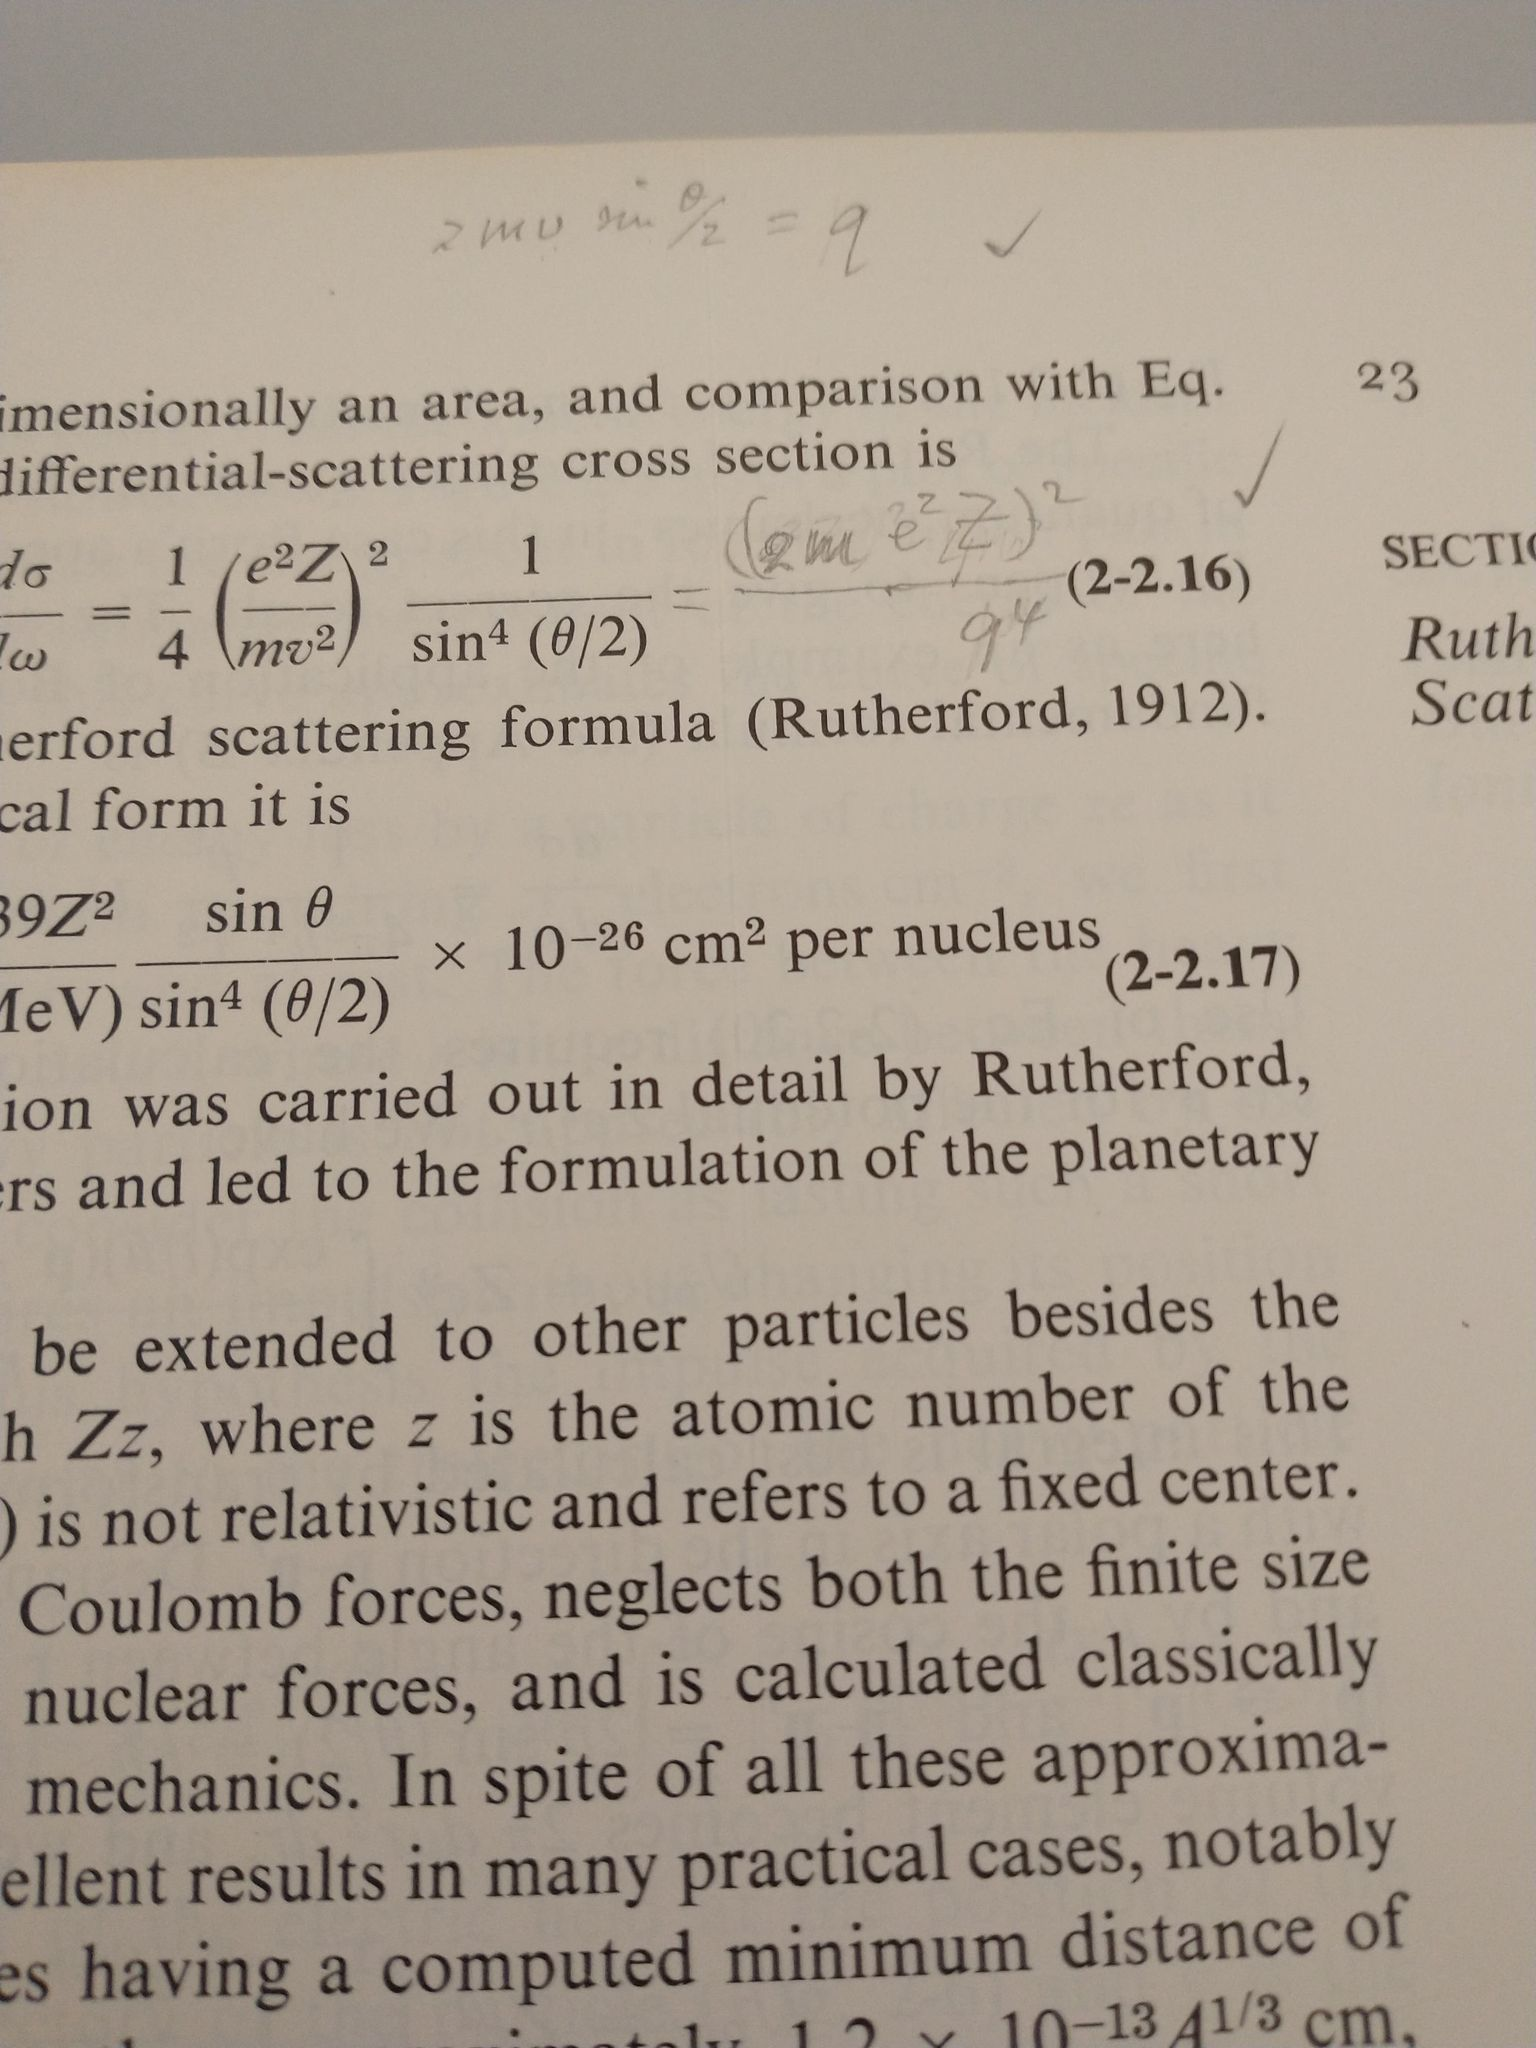 Page 23 addition to equation.